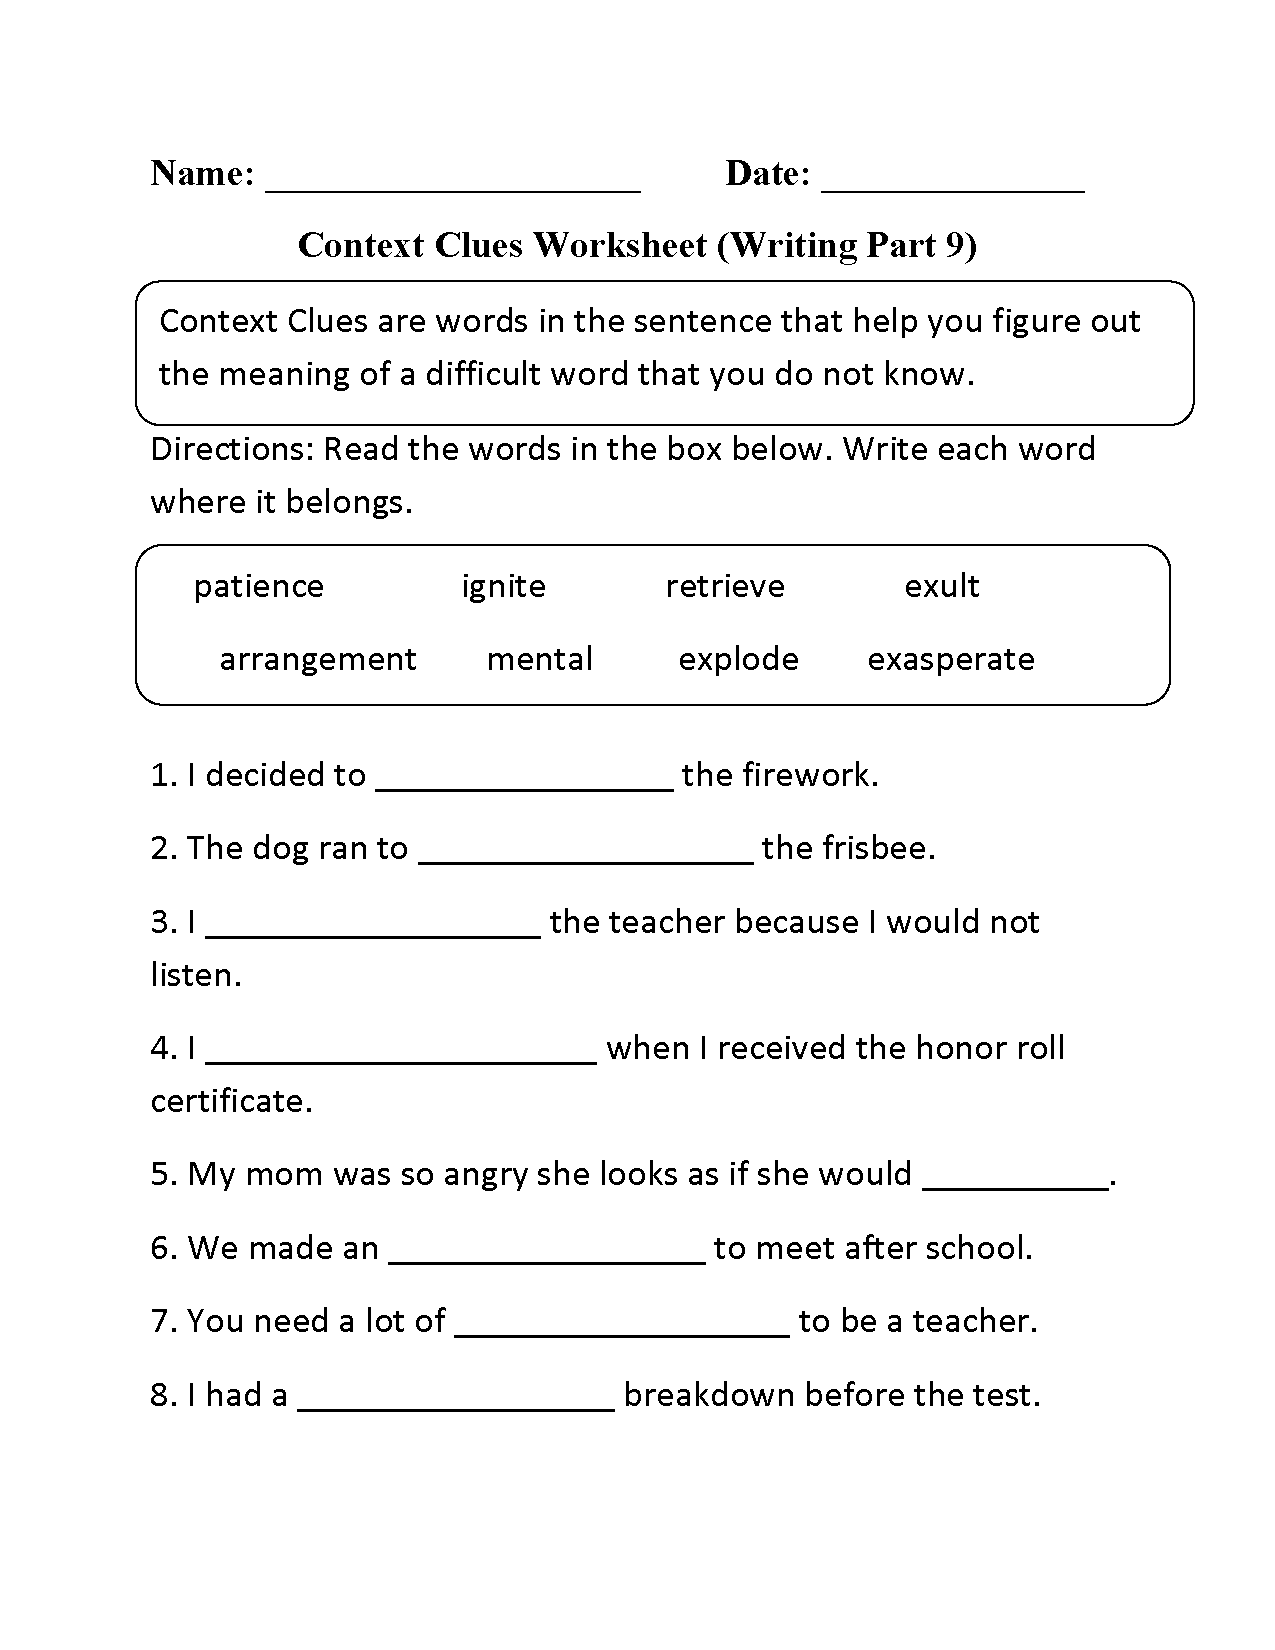 Worksheets 9th Grade Language Arts Worksheets Cheatslist